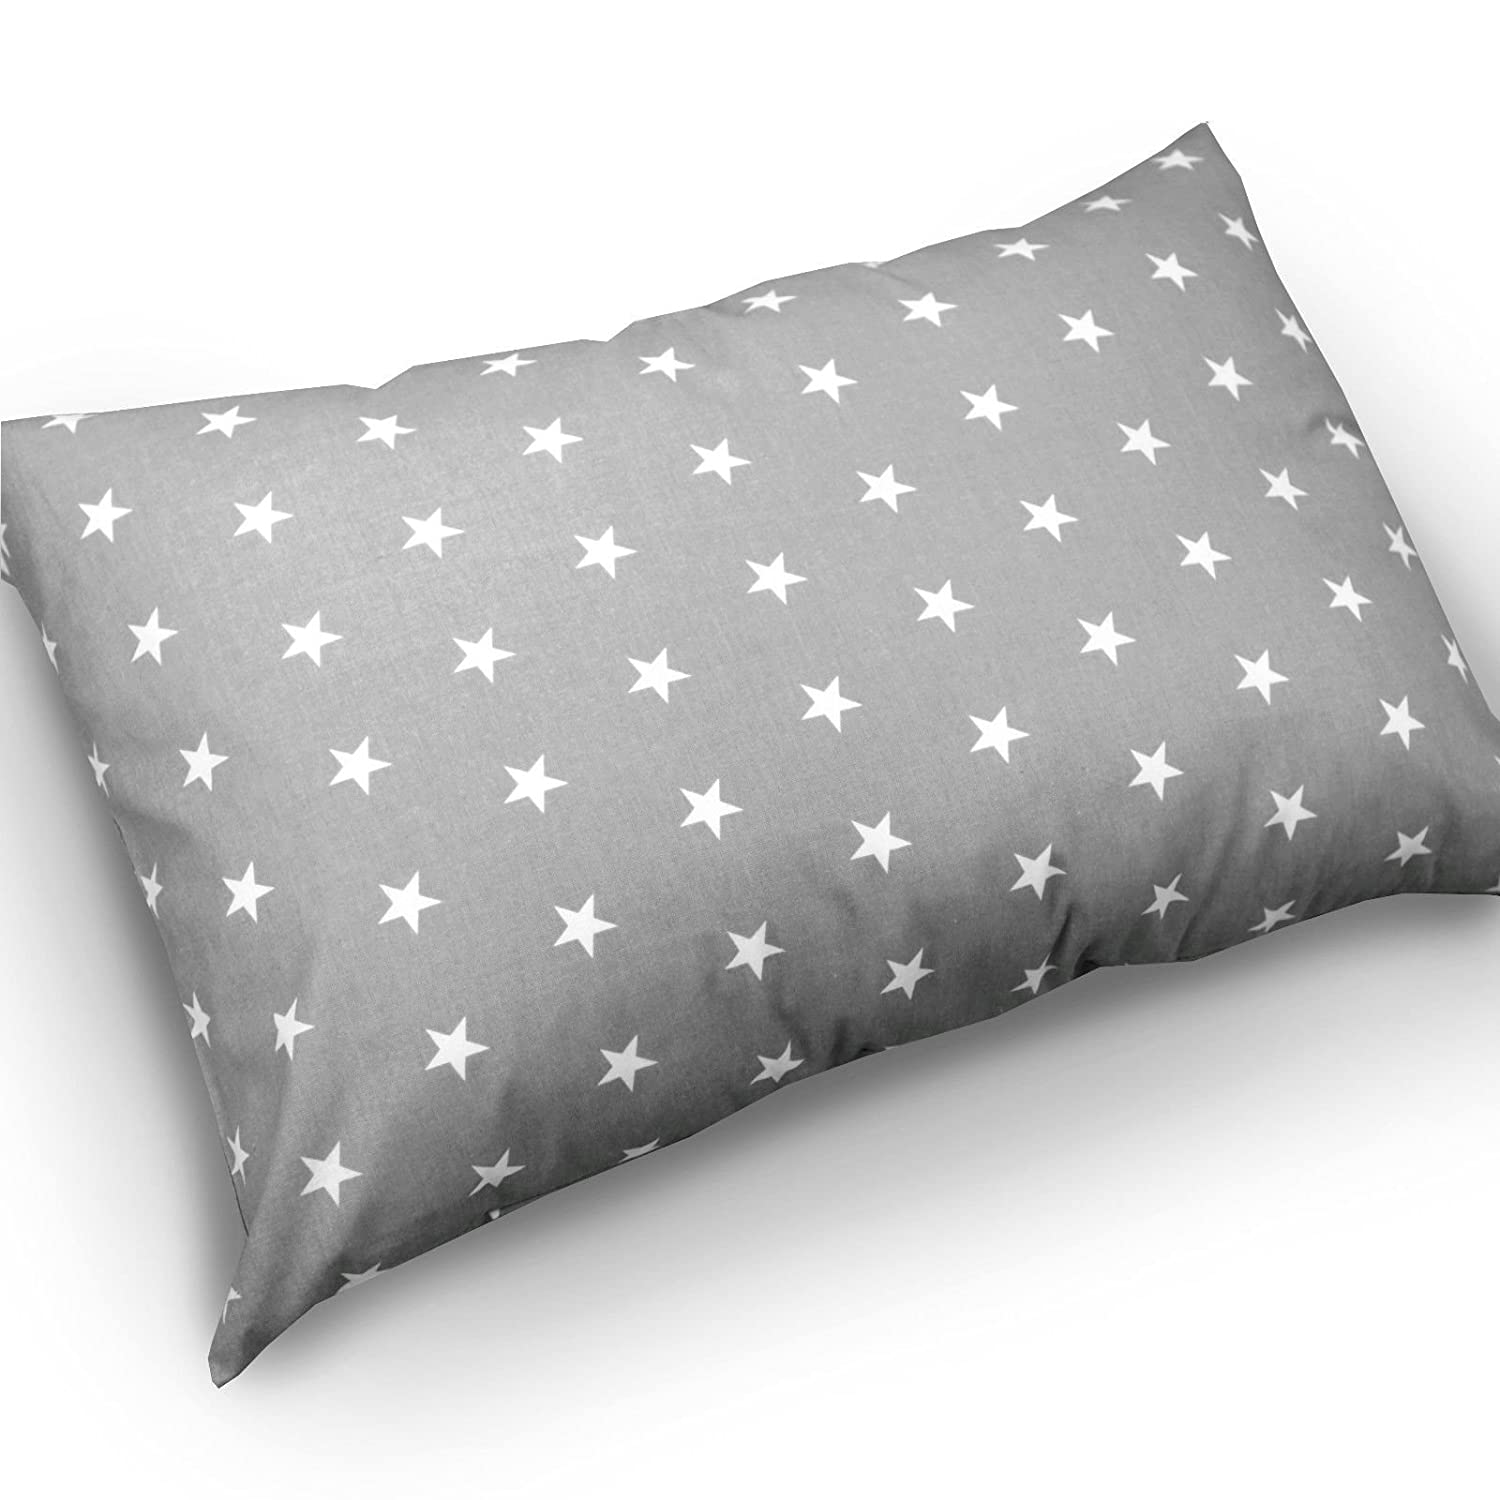 Pillow case ONLY, Safari blue BABY PILLOW CUSHION KIDS 60x40cm BACK SUPPORT DECORATIVE ANTI-ALLERGENIC